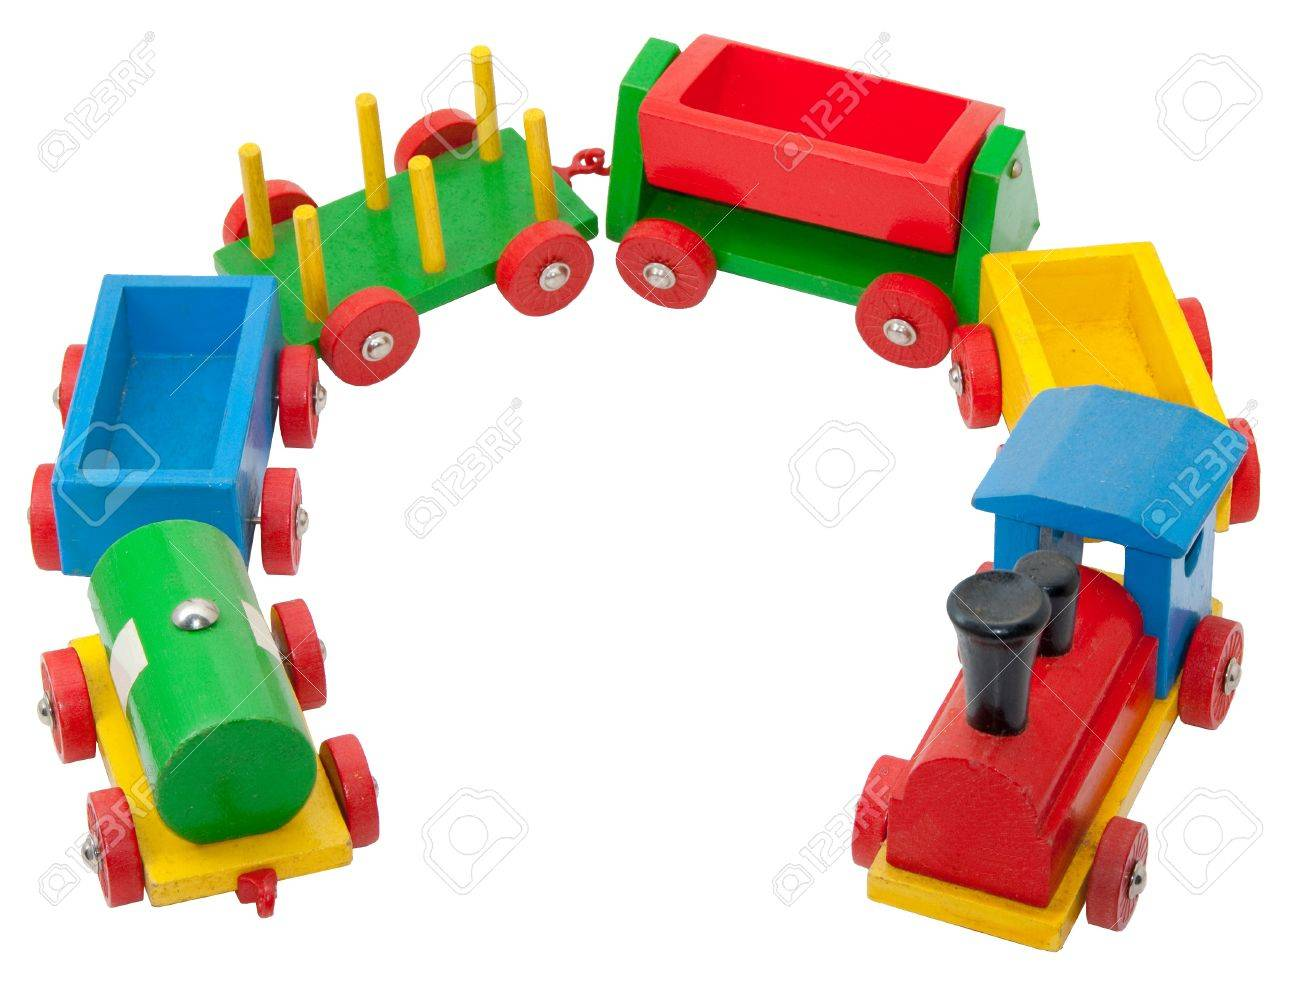 Colorful wooden model railway with steam locomotive and goods waggons Standard-Bild - 9826884